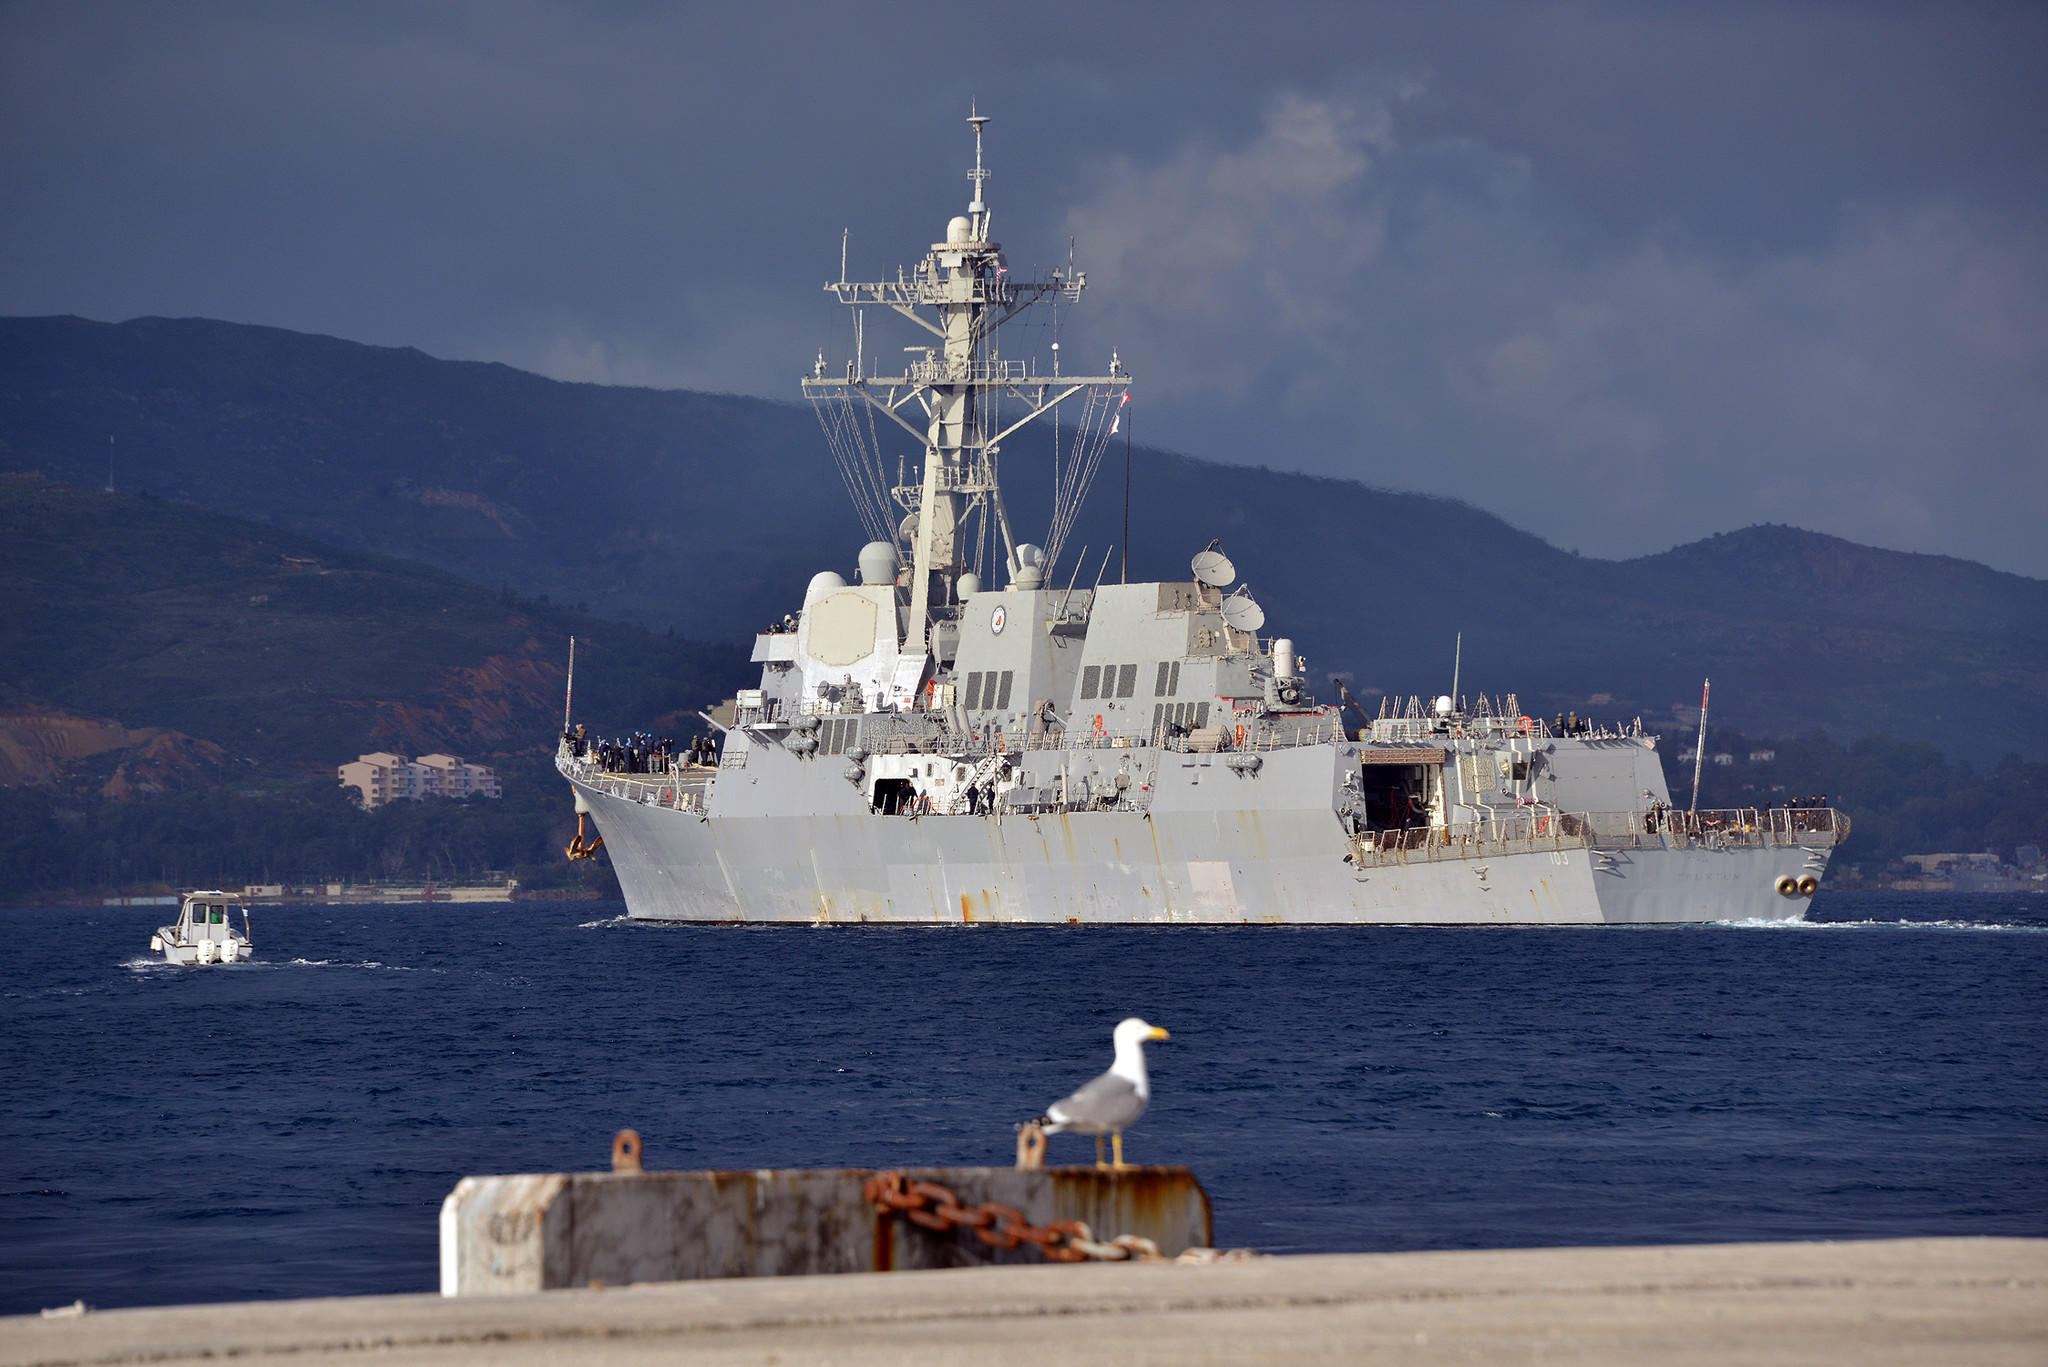 The guided-missile destroyer USS Truxtun (DDG 103) departs the Marathi NATO pier facility following a scheduled port visit to the Greek island of Crete. Truxtun is deployed in support of maritime security operations and theater security cooperation efforts in the U.S. 6th Fleet area of responsibility. (U.S. Navy photo by Paul Farley/Released)